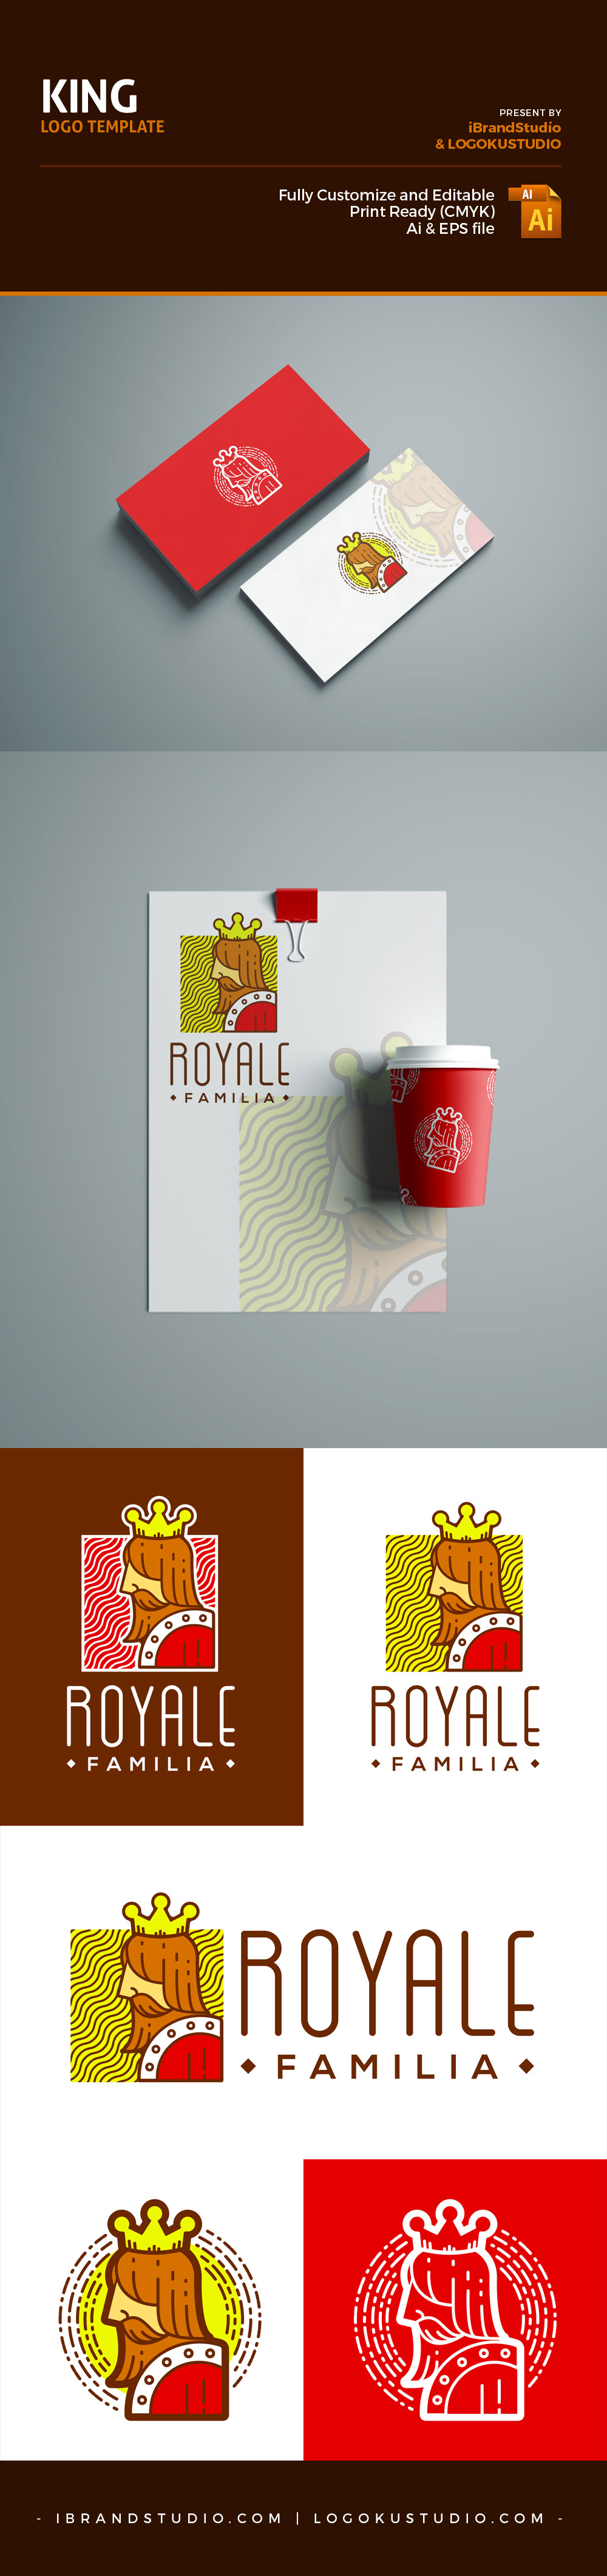 Free King Logo Template (AI, EPS) by iBrandStudio